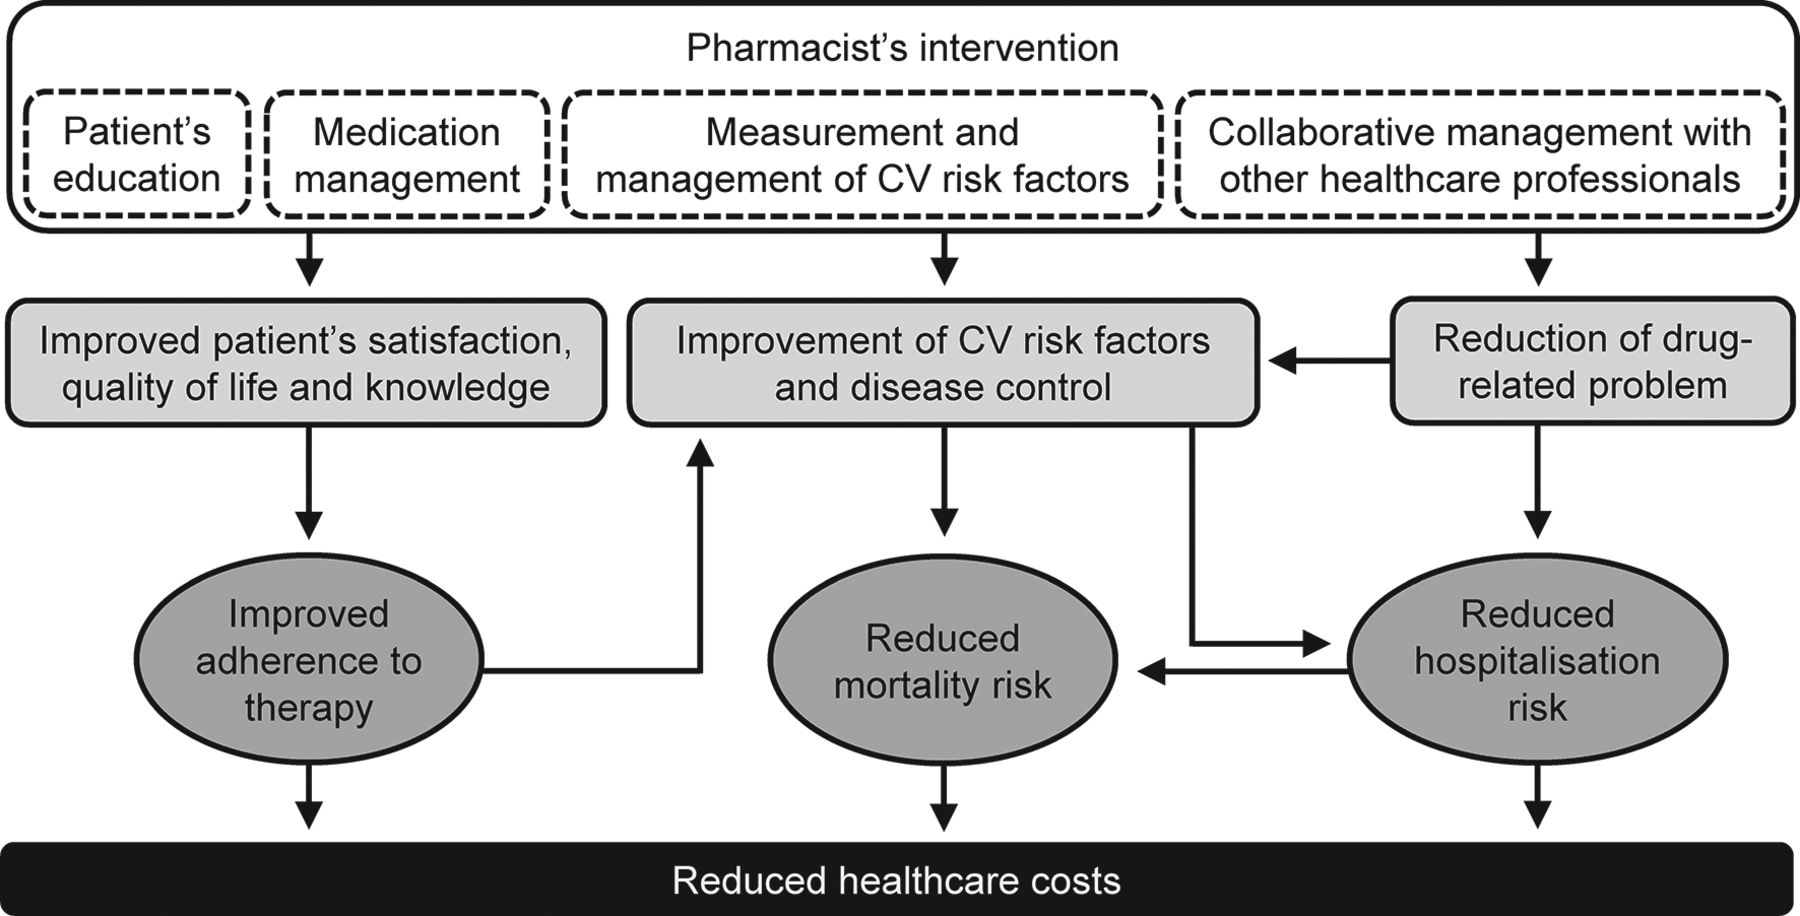 Effectiveness of pharmacist's intervention in the management